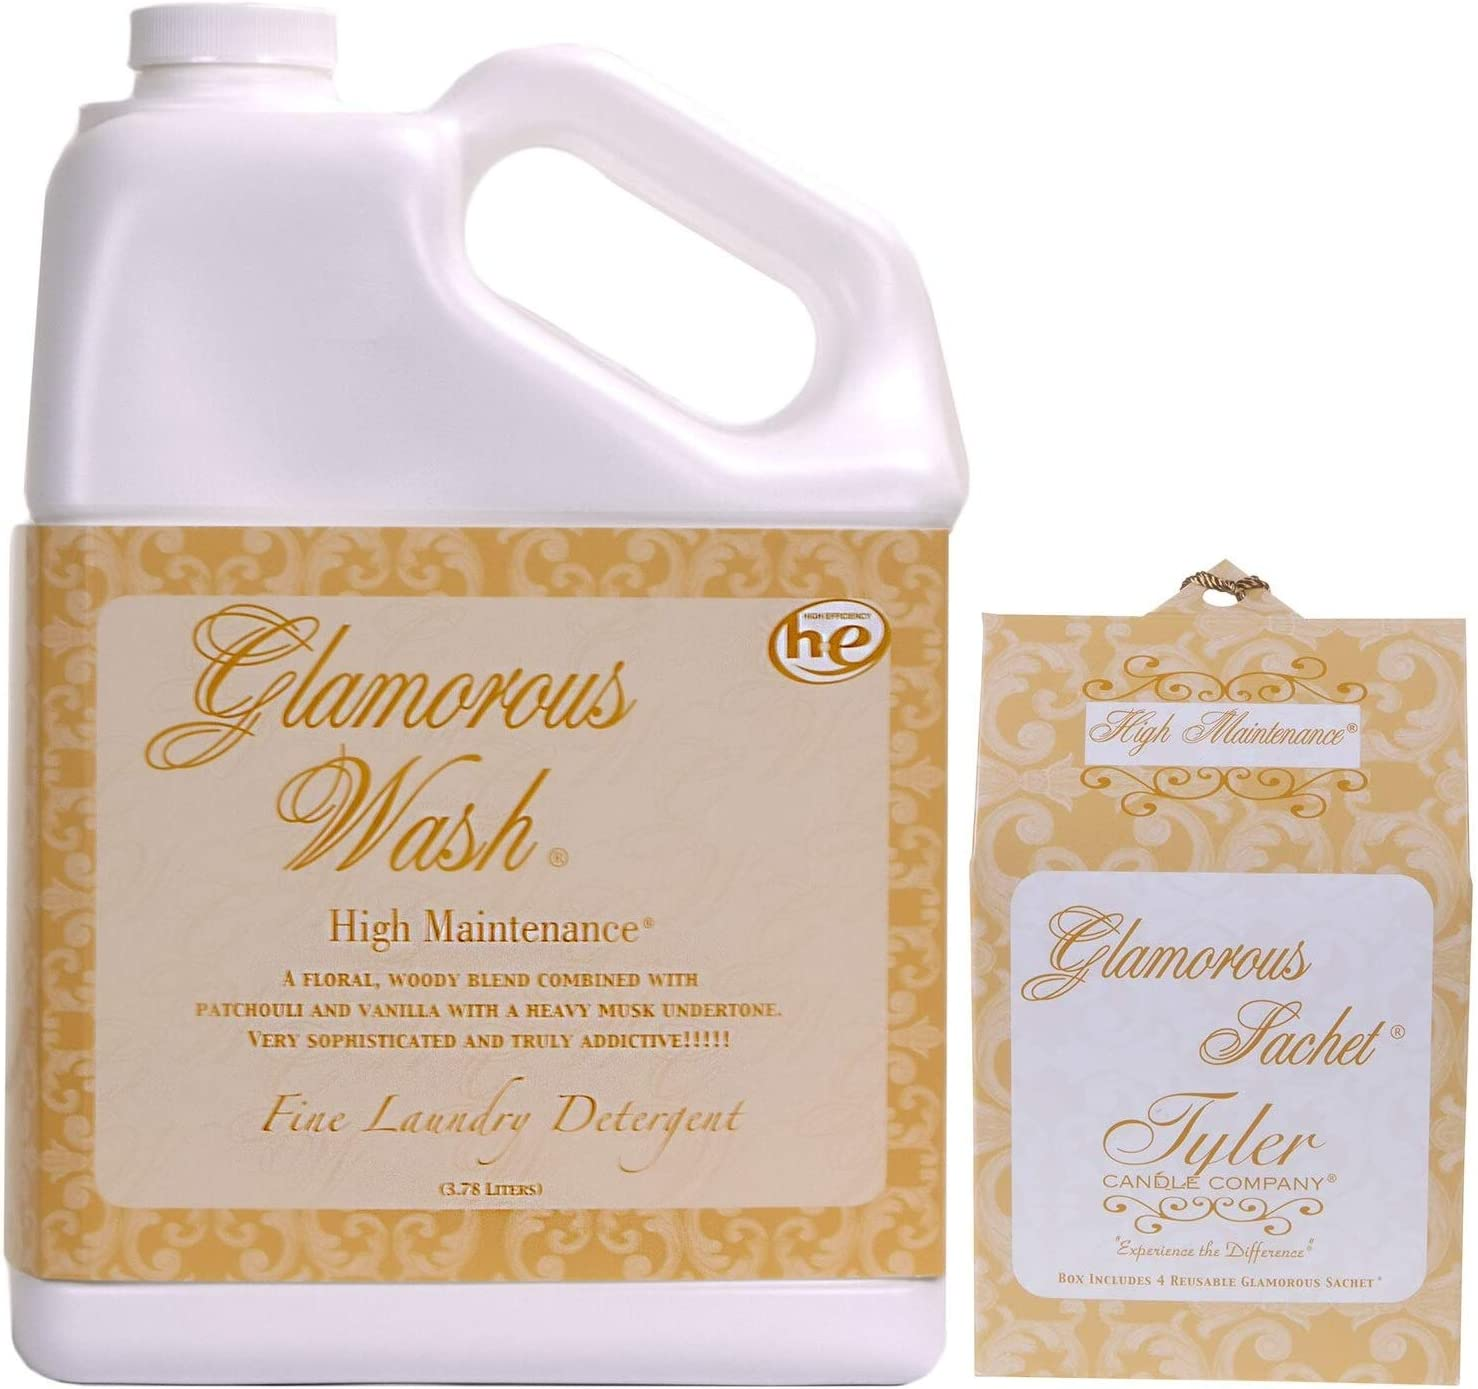 Tyler Candle Glamorous Wash High Maintenance Laundry Detergent 128oz w/High Maintenance Sachets Bundle